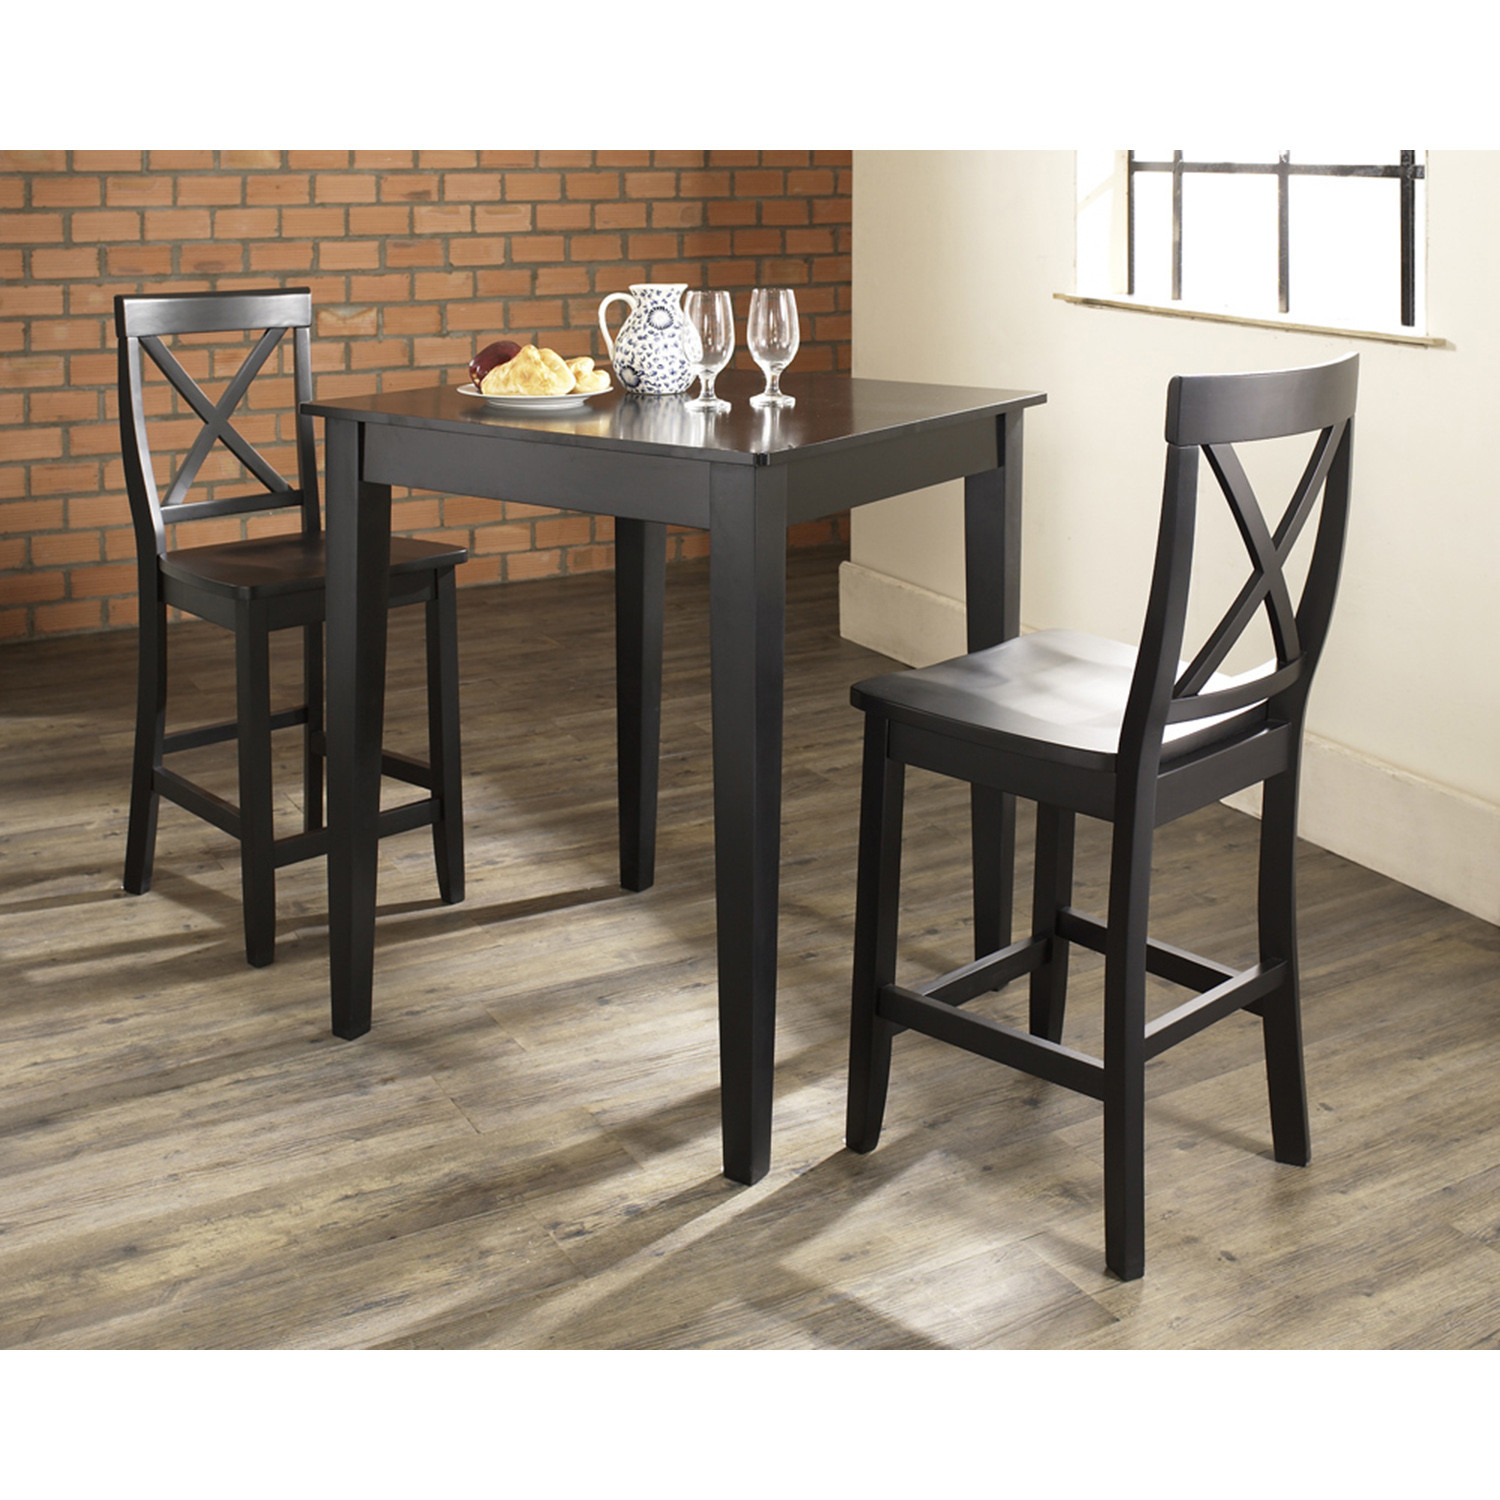 3-Piece Pub Dining Set - Tapered Table Legs, X-Back Stools, Black - CROS-KD320005BK